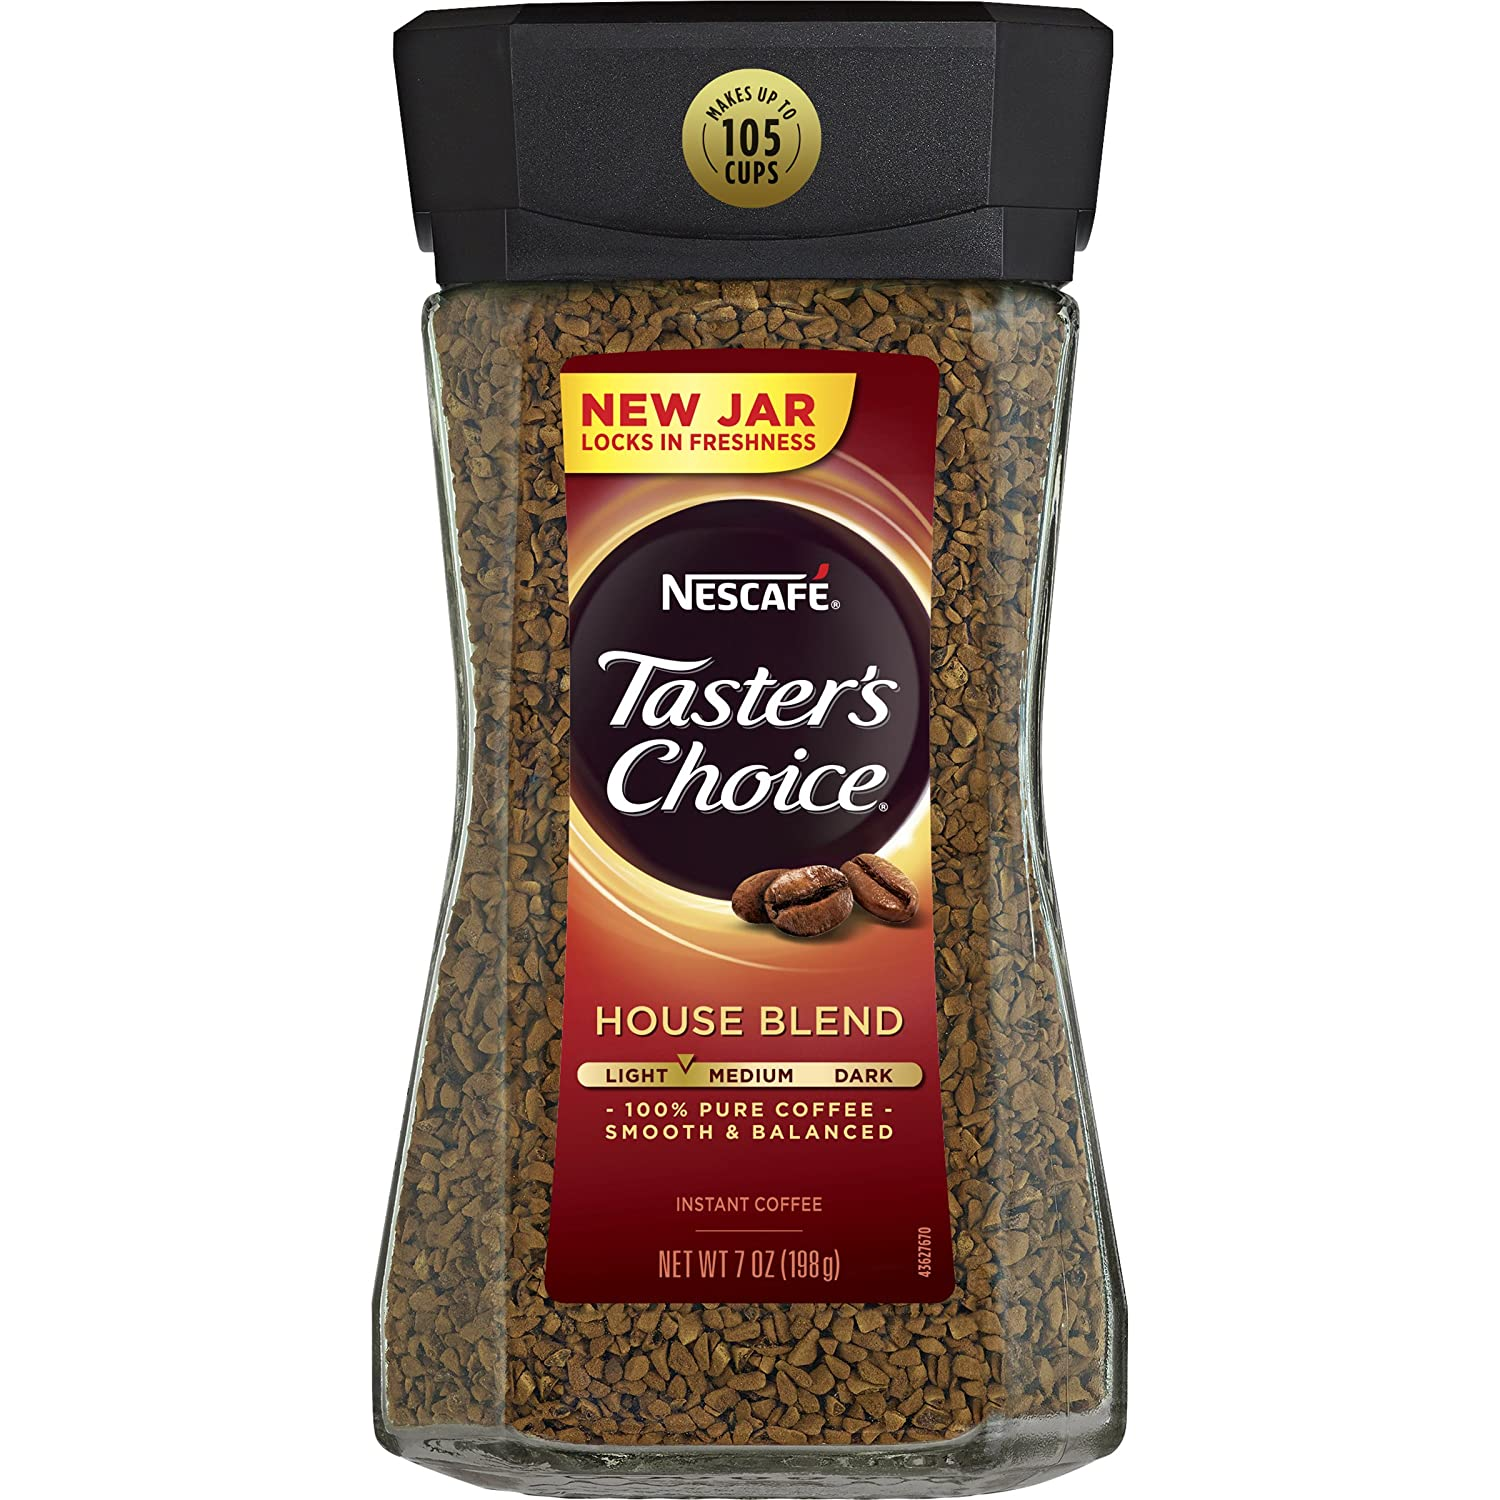 Nescafe Taster's Choice Instant Coffee, House Blend, 7 Ounce